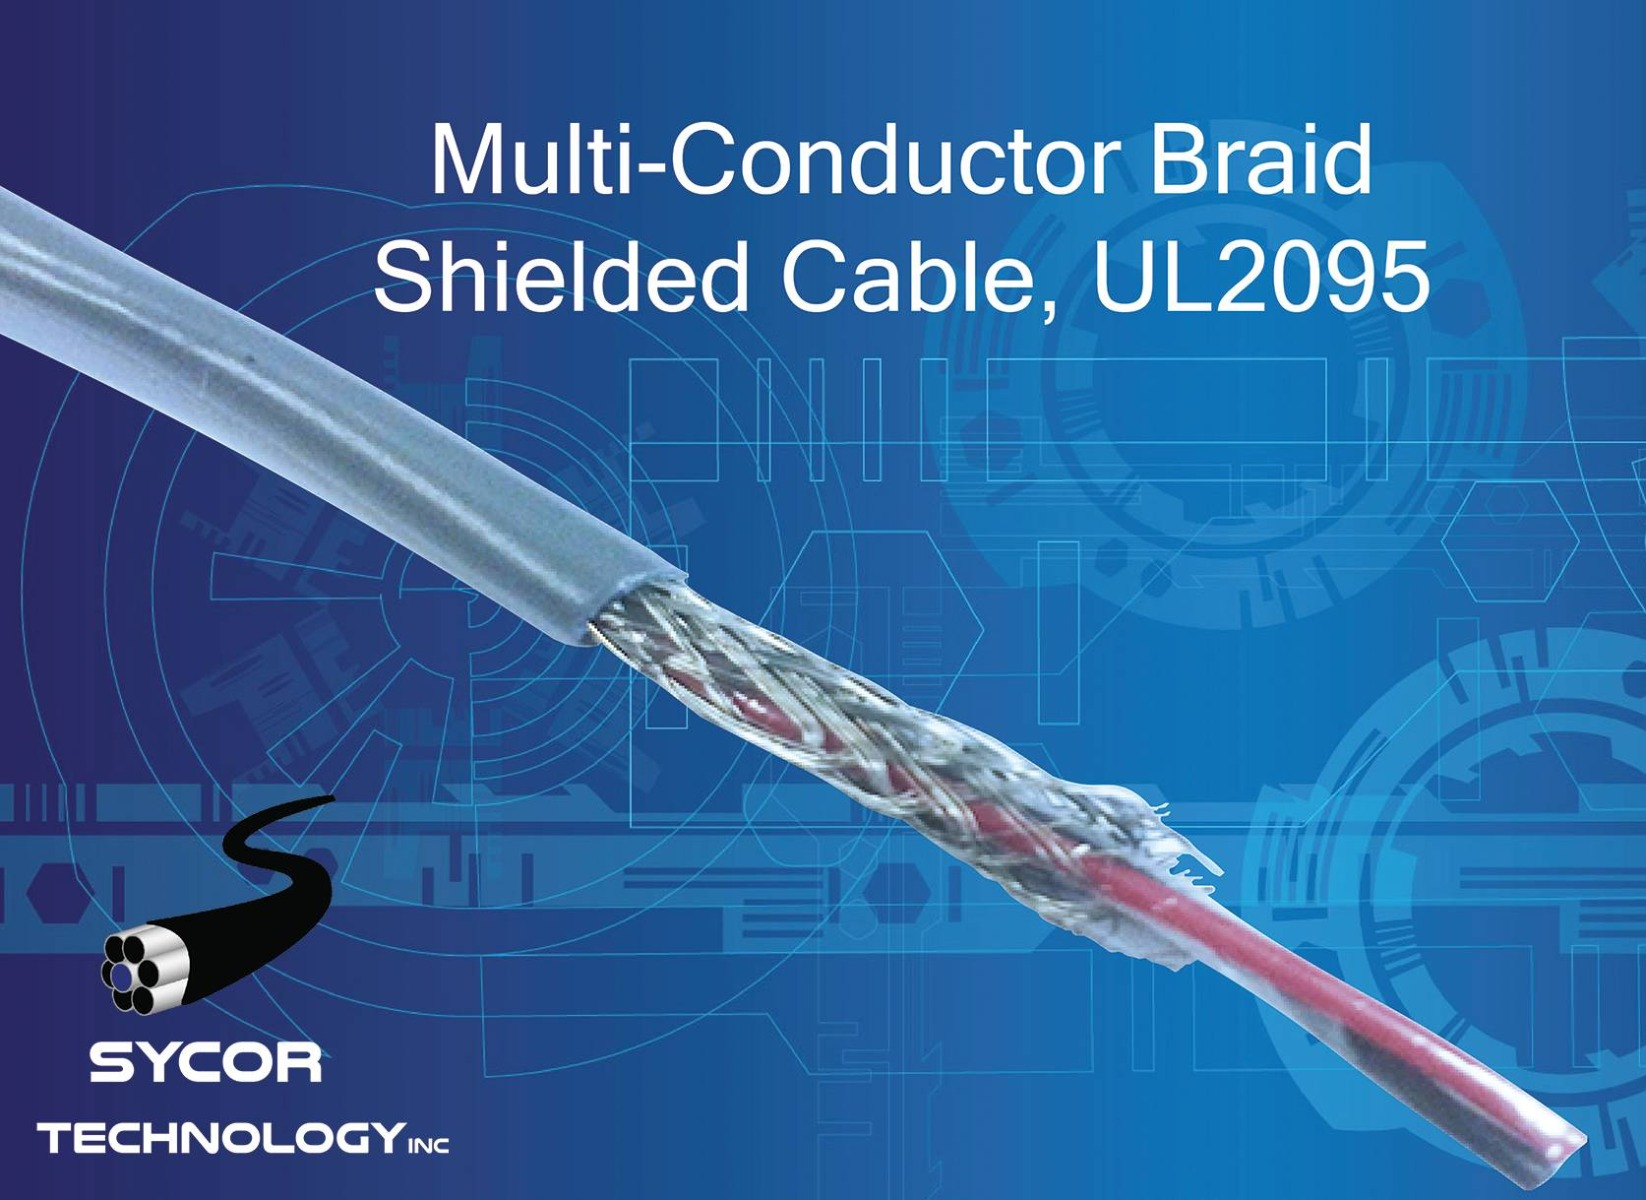 Multi-Conductor Braid Shielded Cable, UL2095